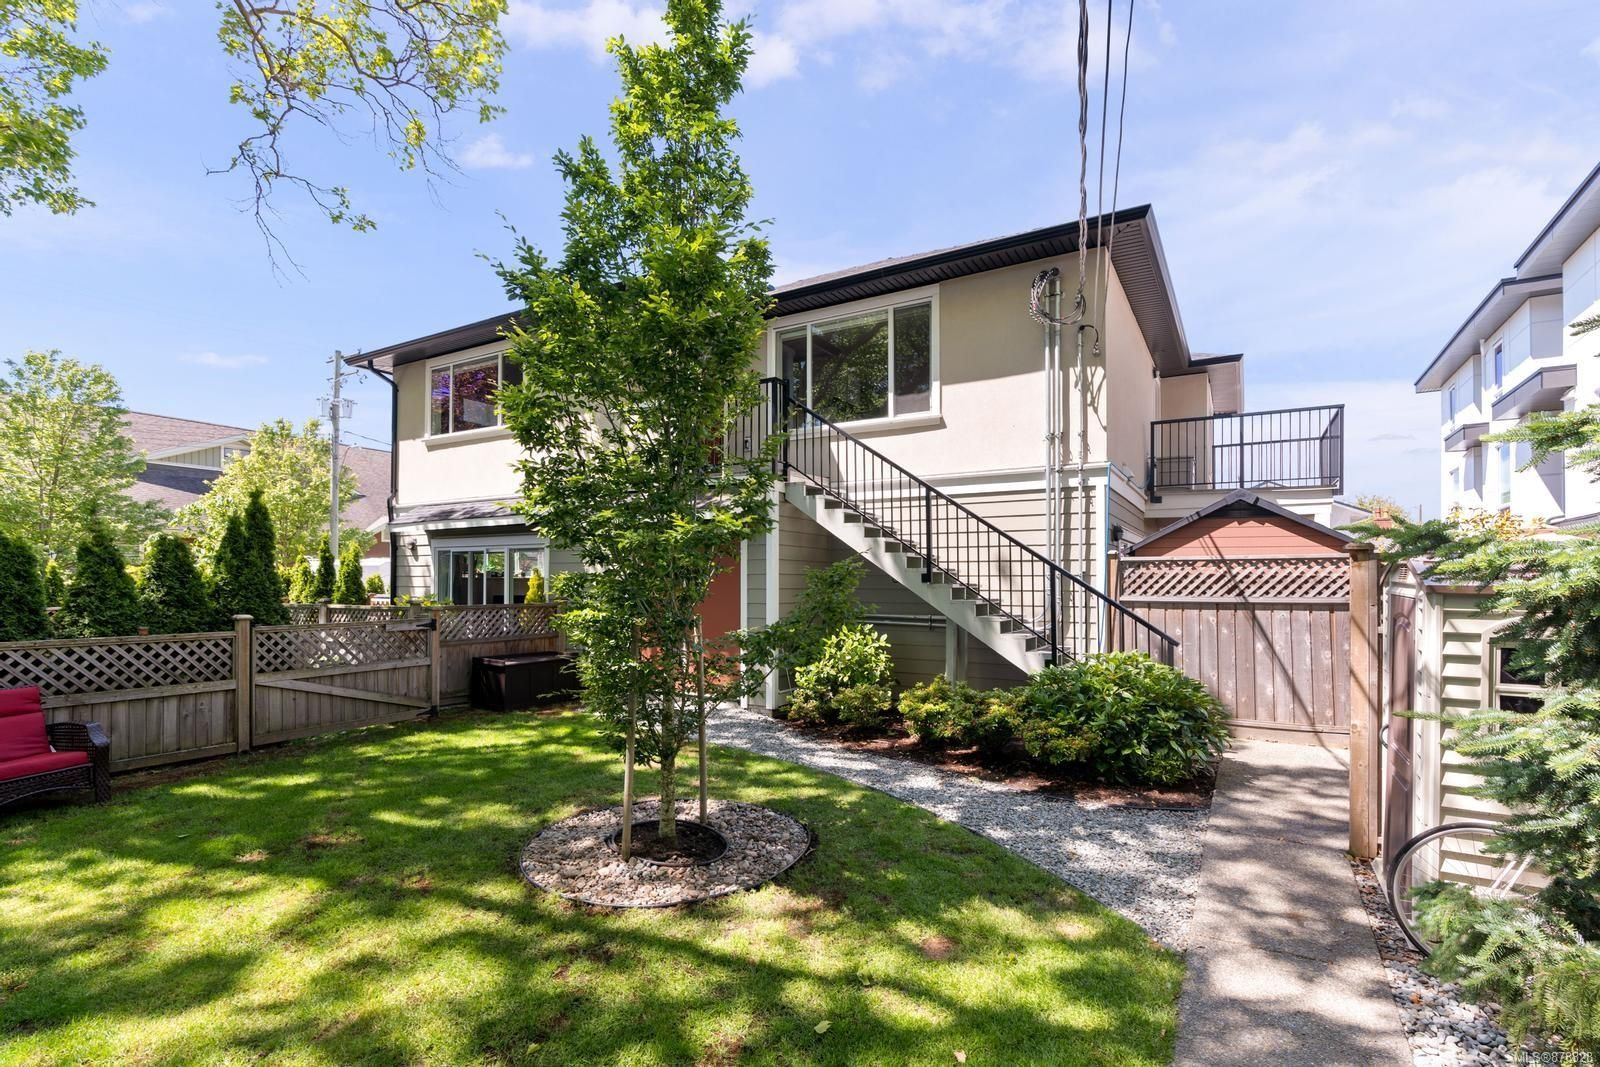 Main Photo: 3 1680 Ryan St in : Vi Oaklands Row/Townhouse for sale (Victoria)  : MLS®# 878328